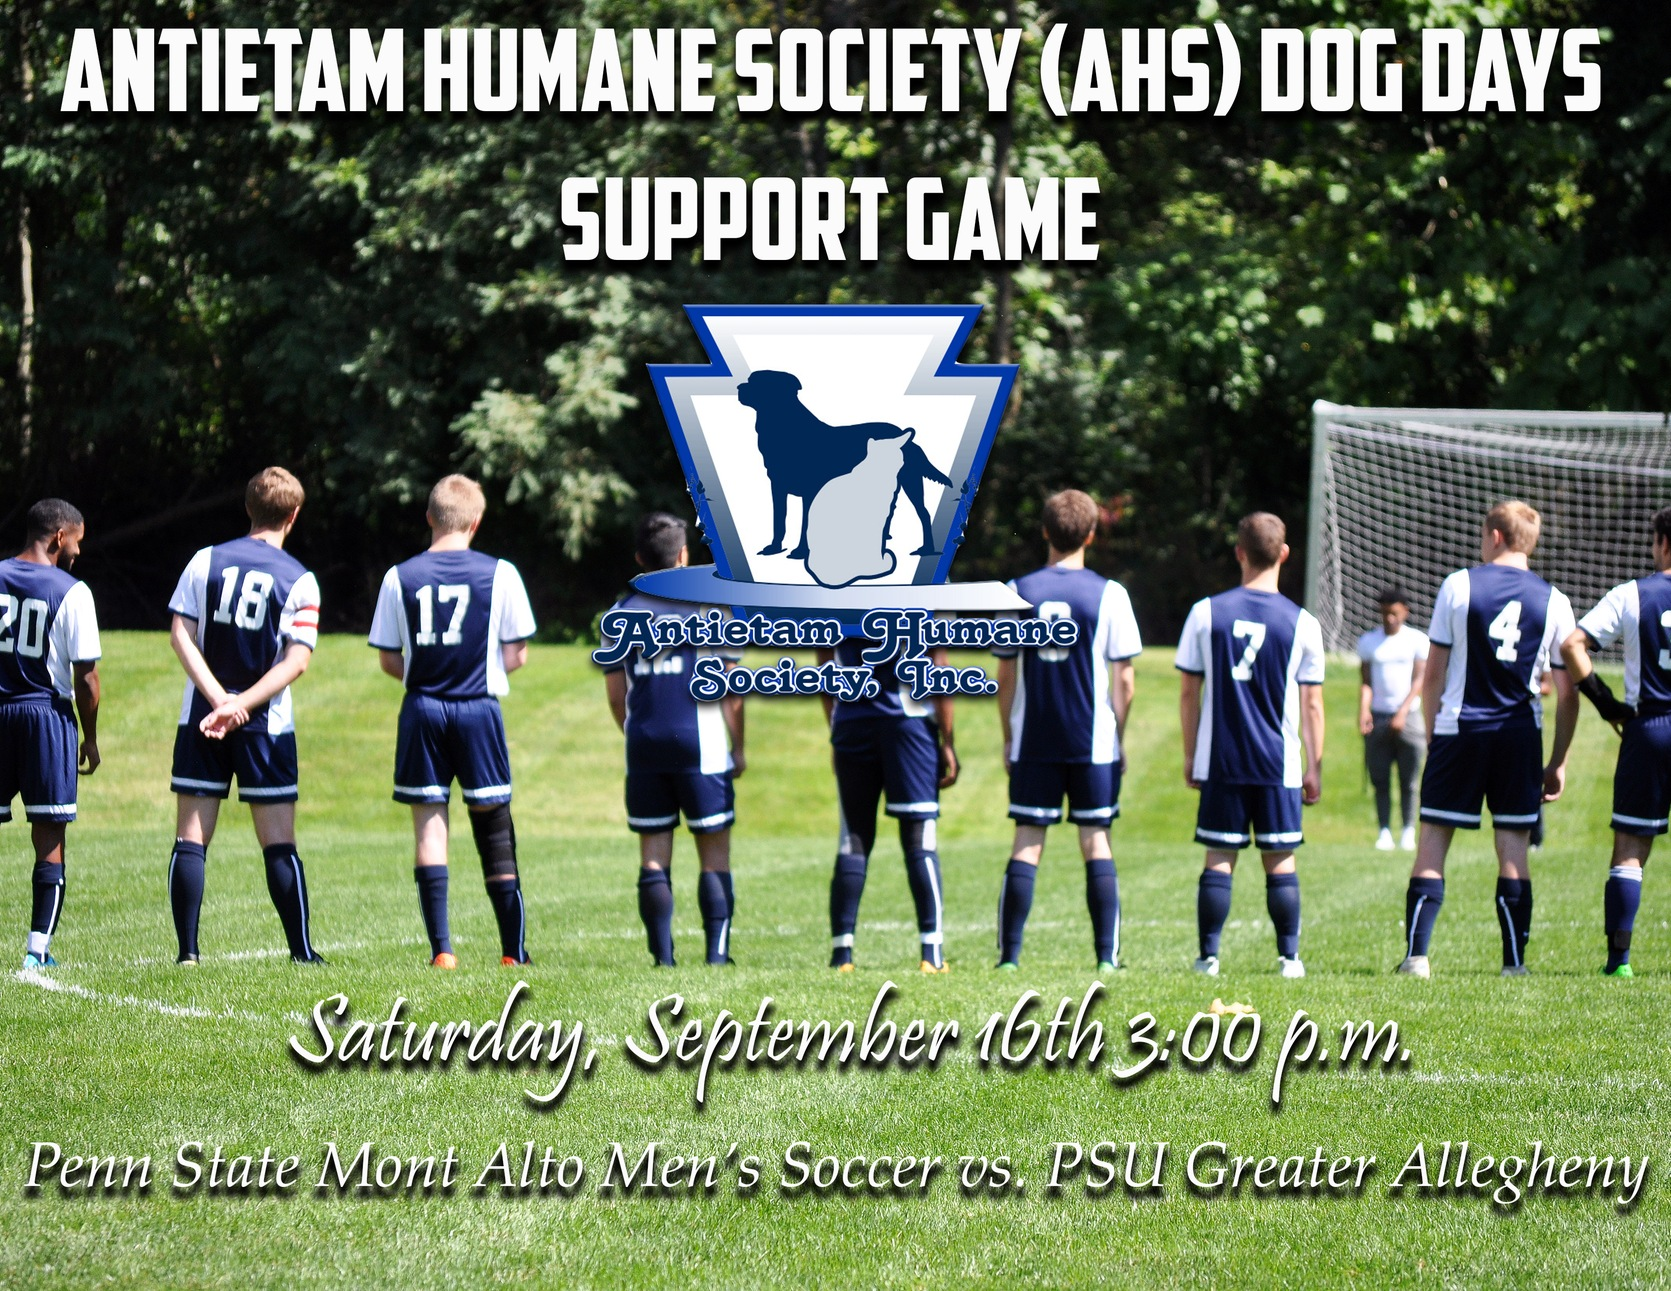 Men's Soccer to Host Antietam Humane Society Benefit Game This Weekend Against PSU Greater Allegheny